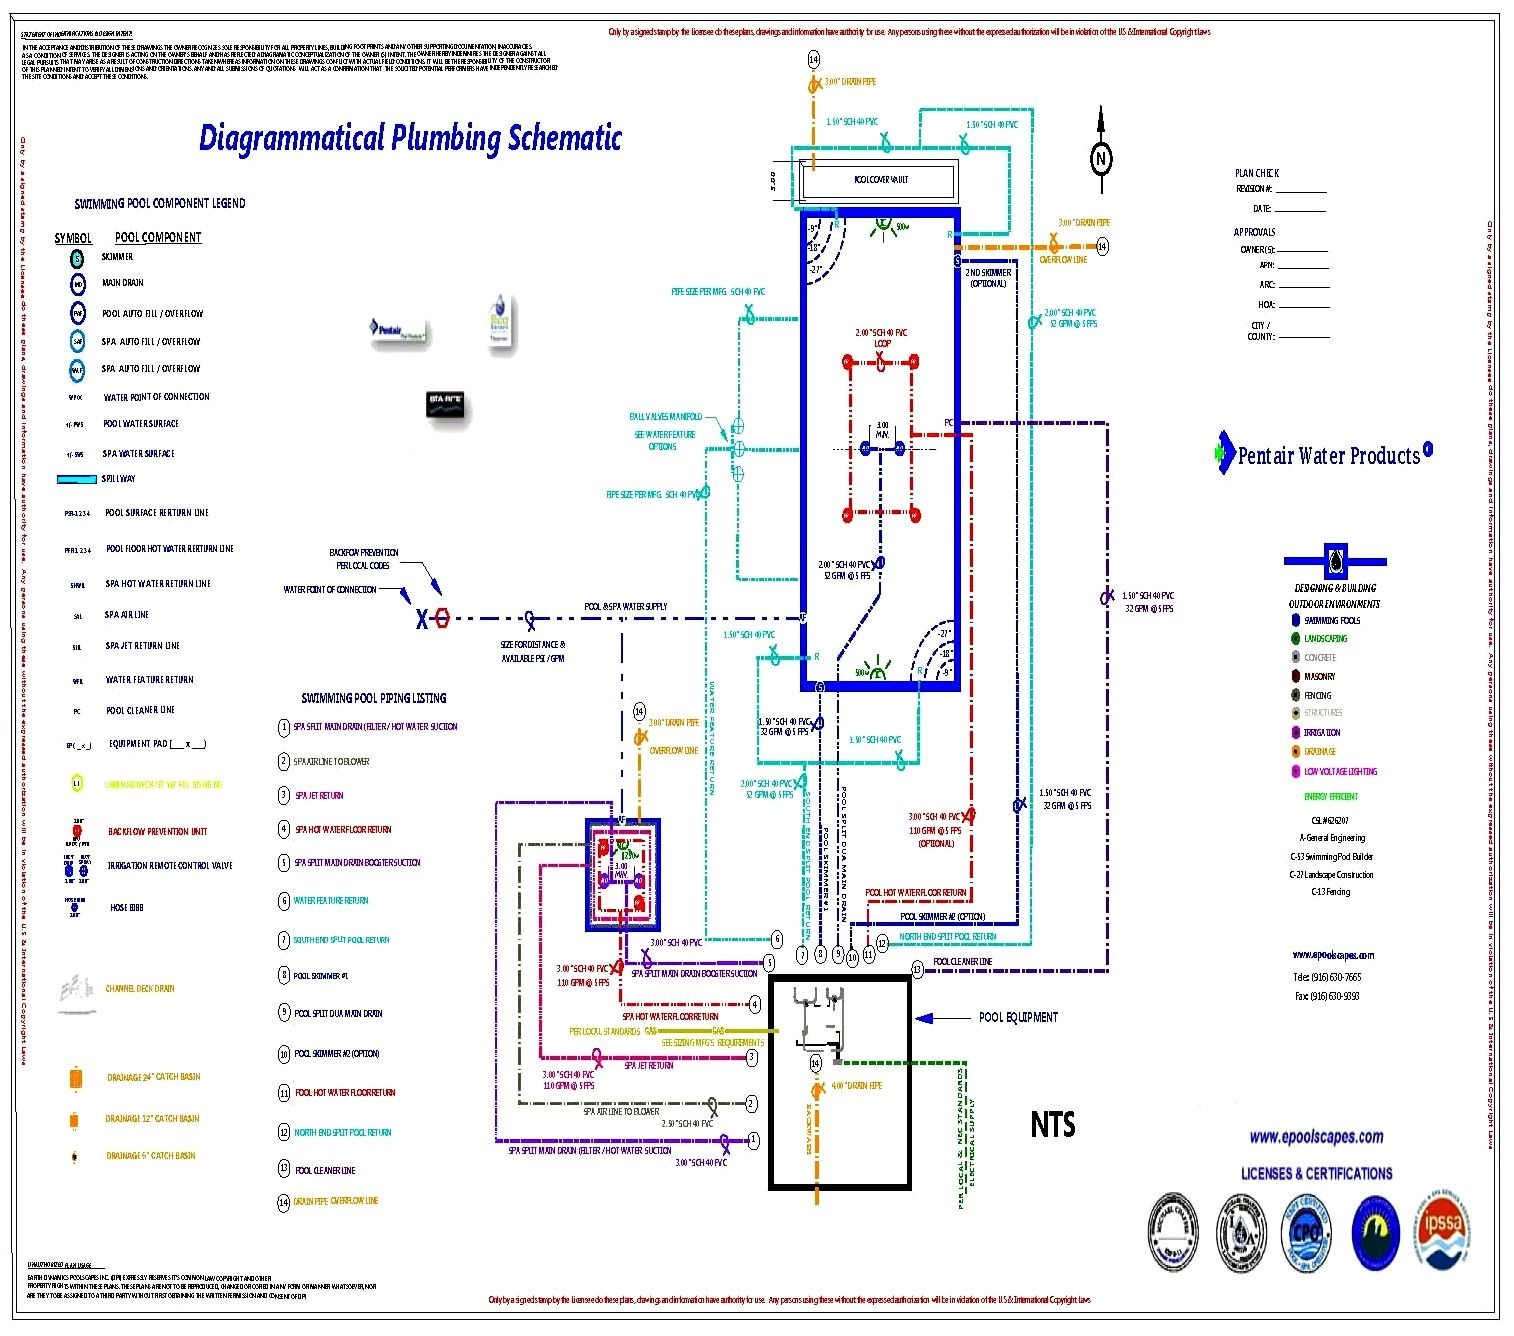 S plumbing schematic 2010 1514 1336 pool pinterest for Plumbing schematic